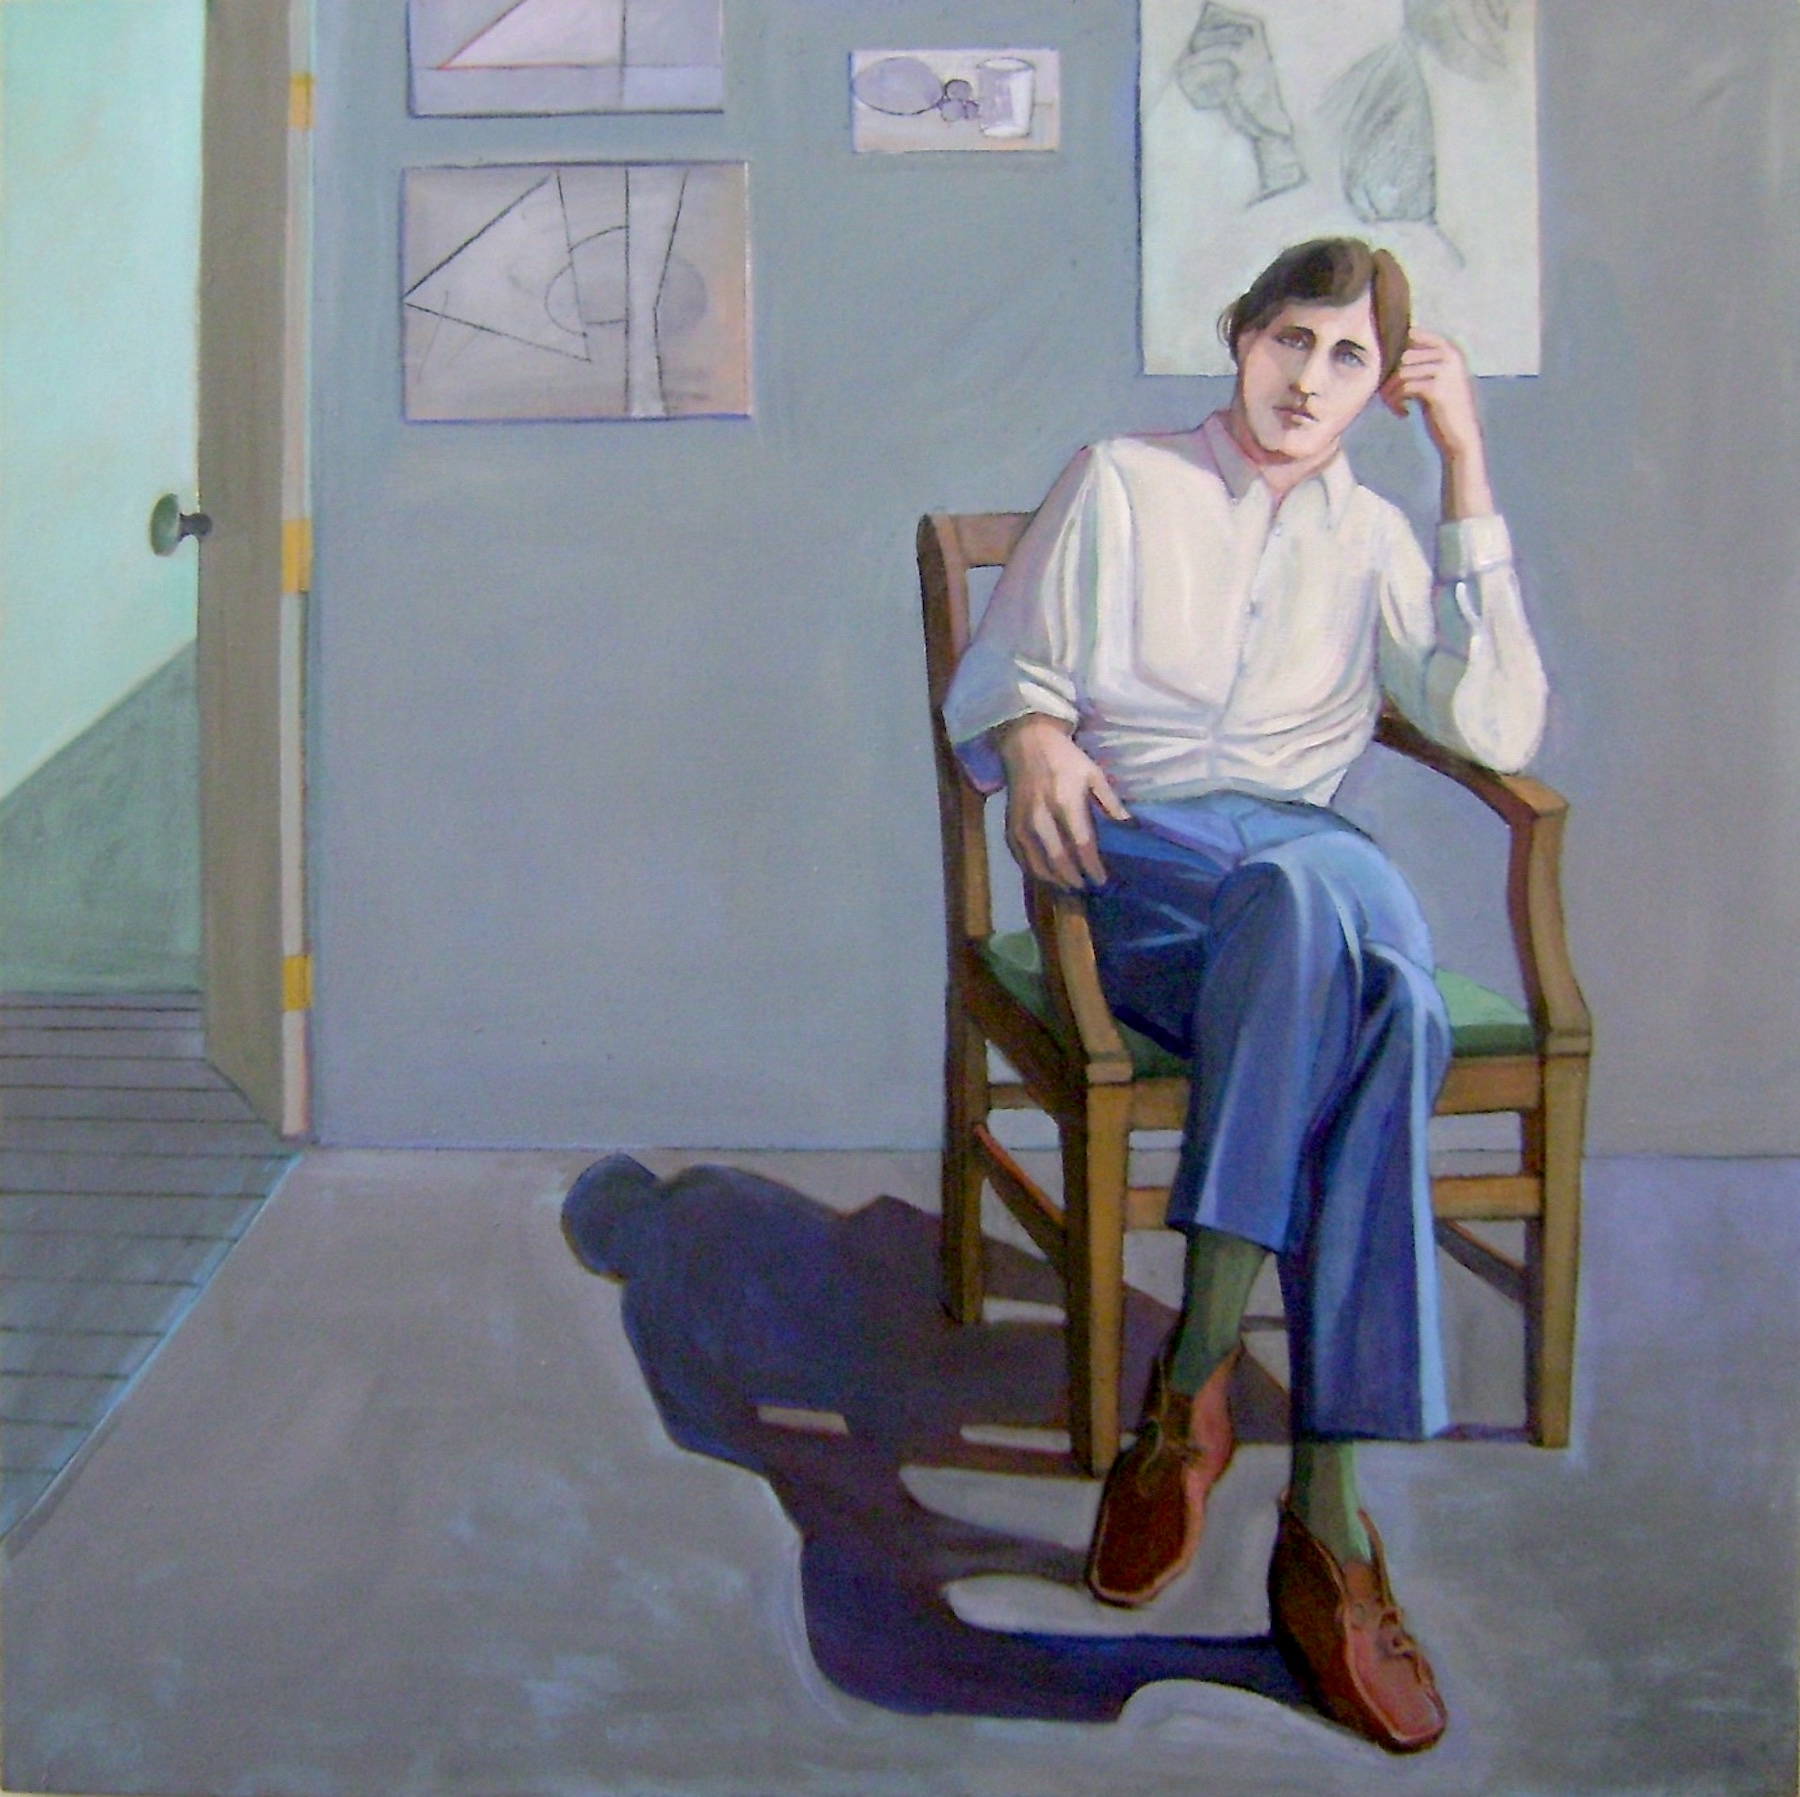 William Theophilus Brown     Portrait of Bill Imhoff,   1970 Oil on canvas 48 x 48 inches       For More Information     Artist Biography, Exhibitions & Collections